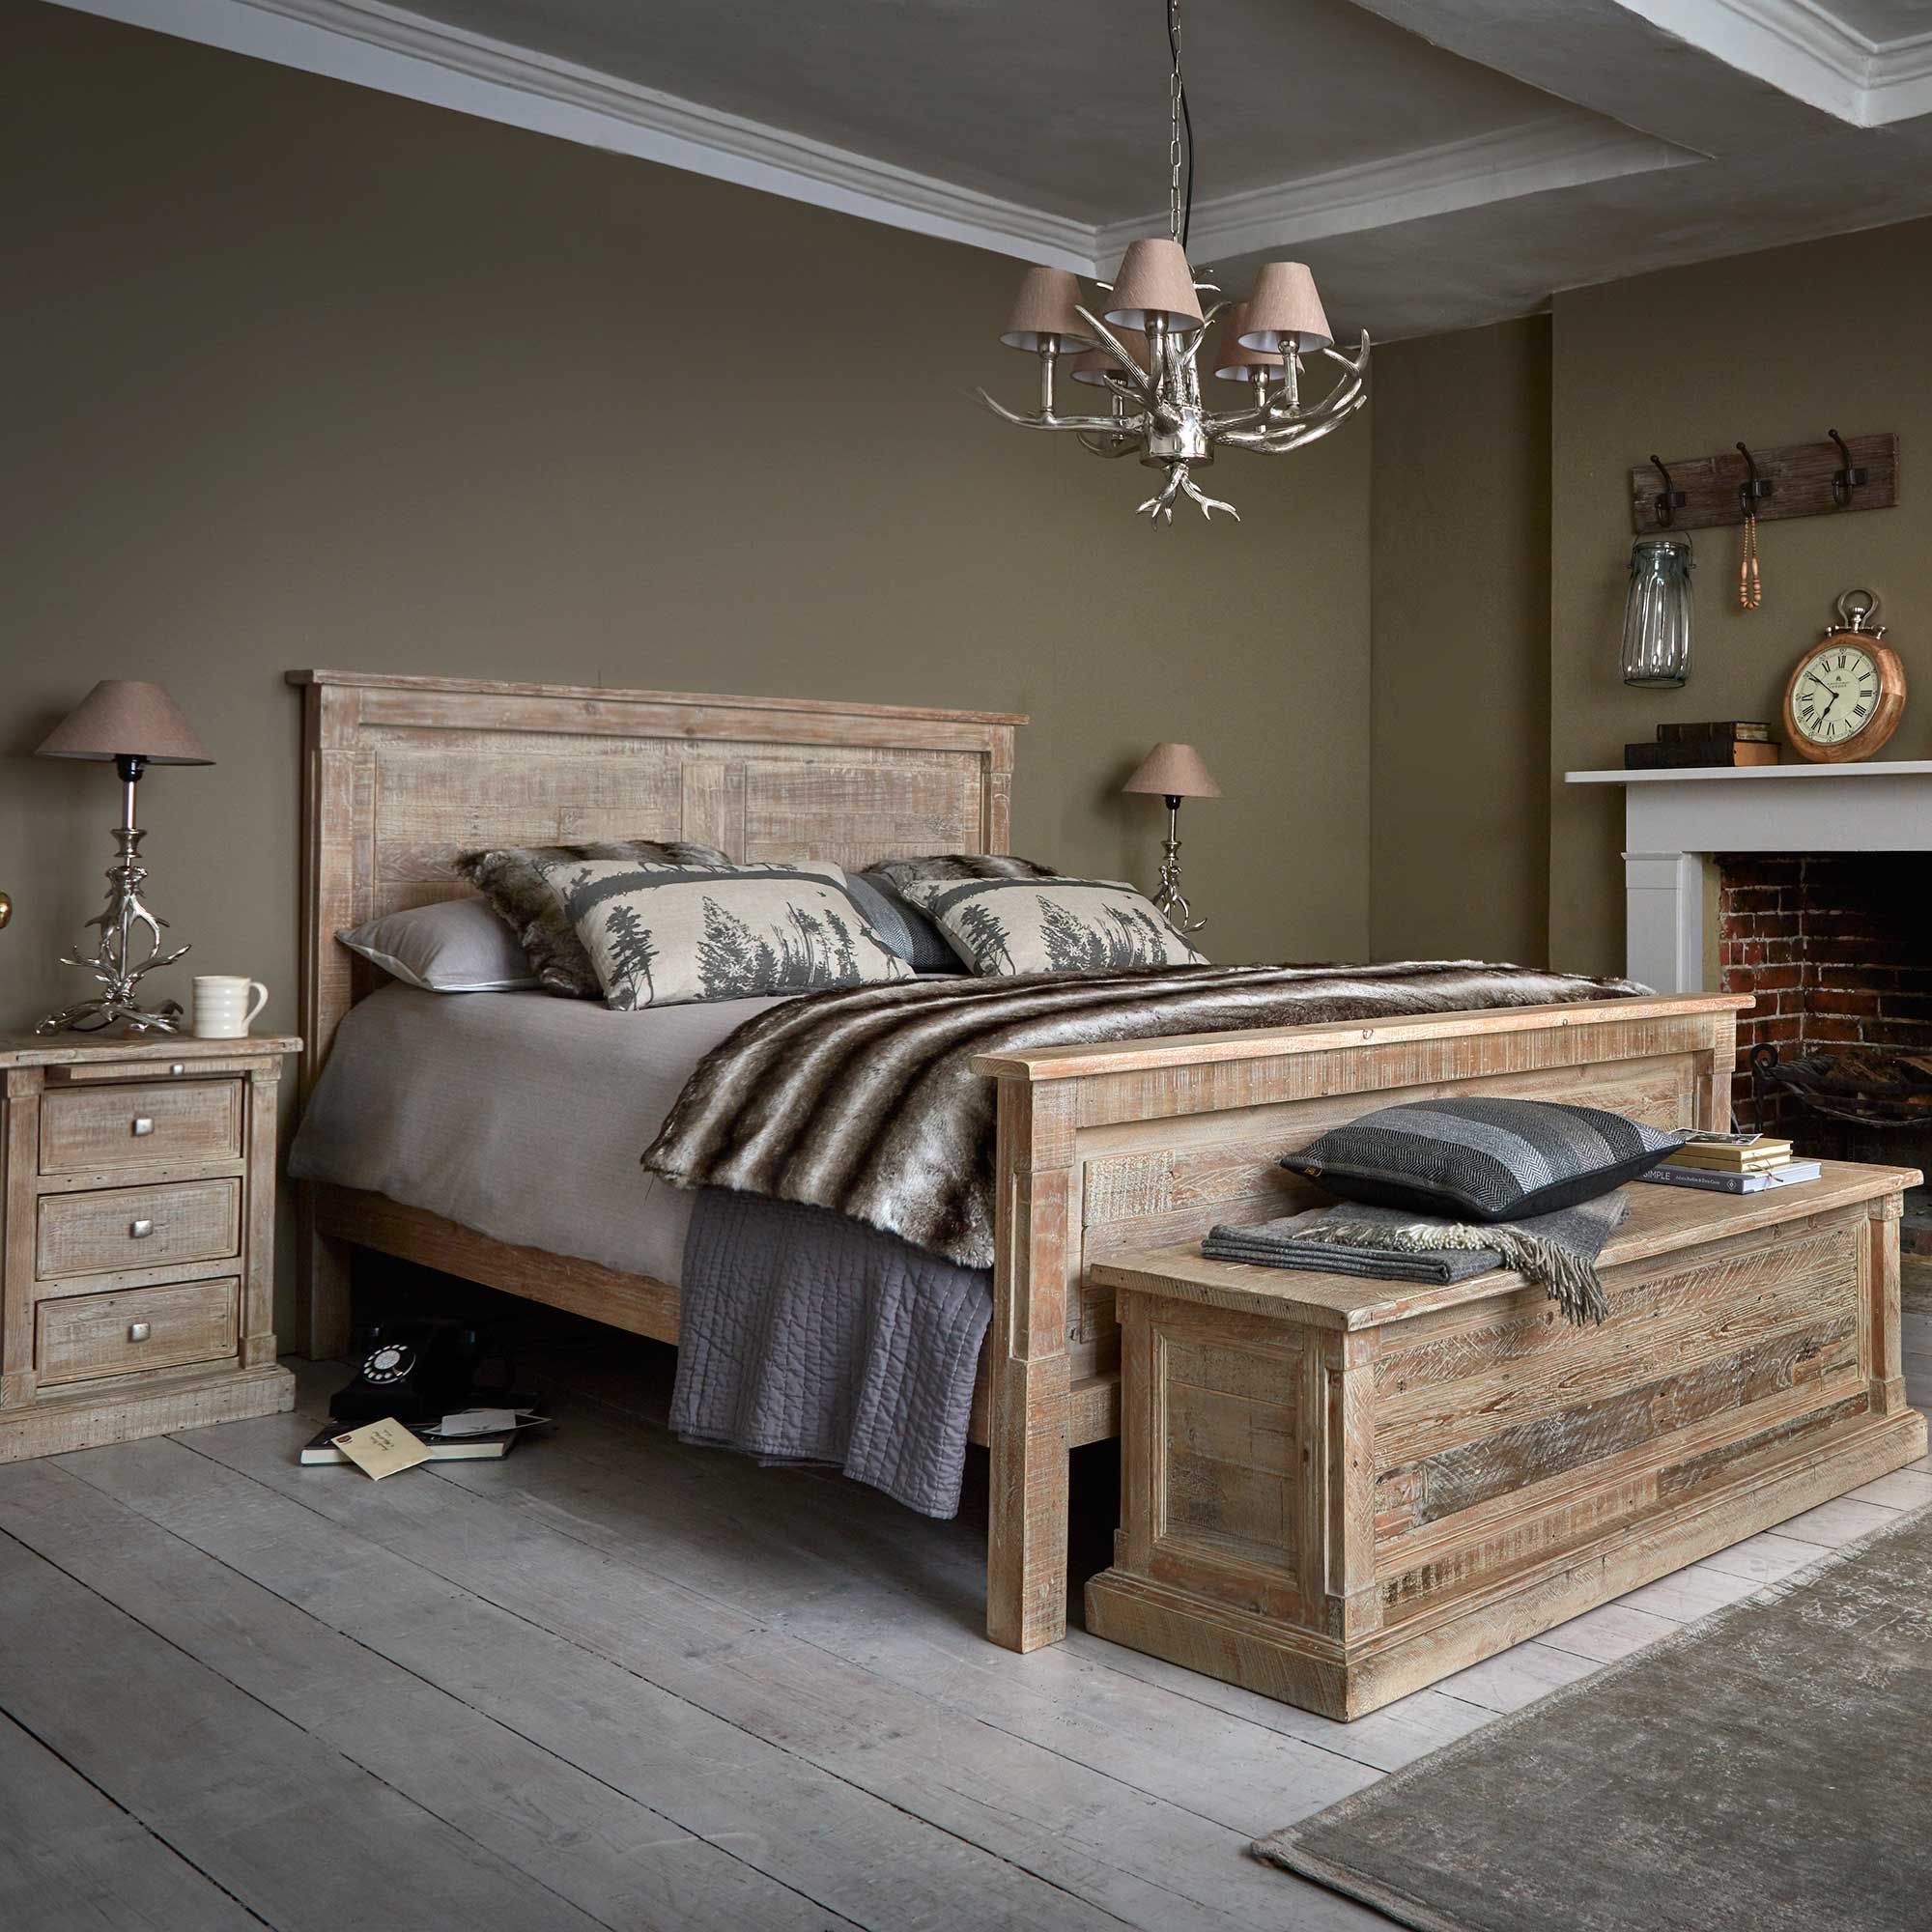 The Austen Bed Frame is made from reclaimed wood with a ...